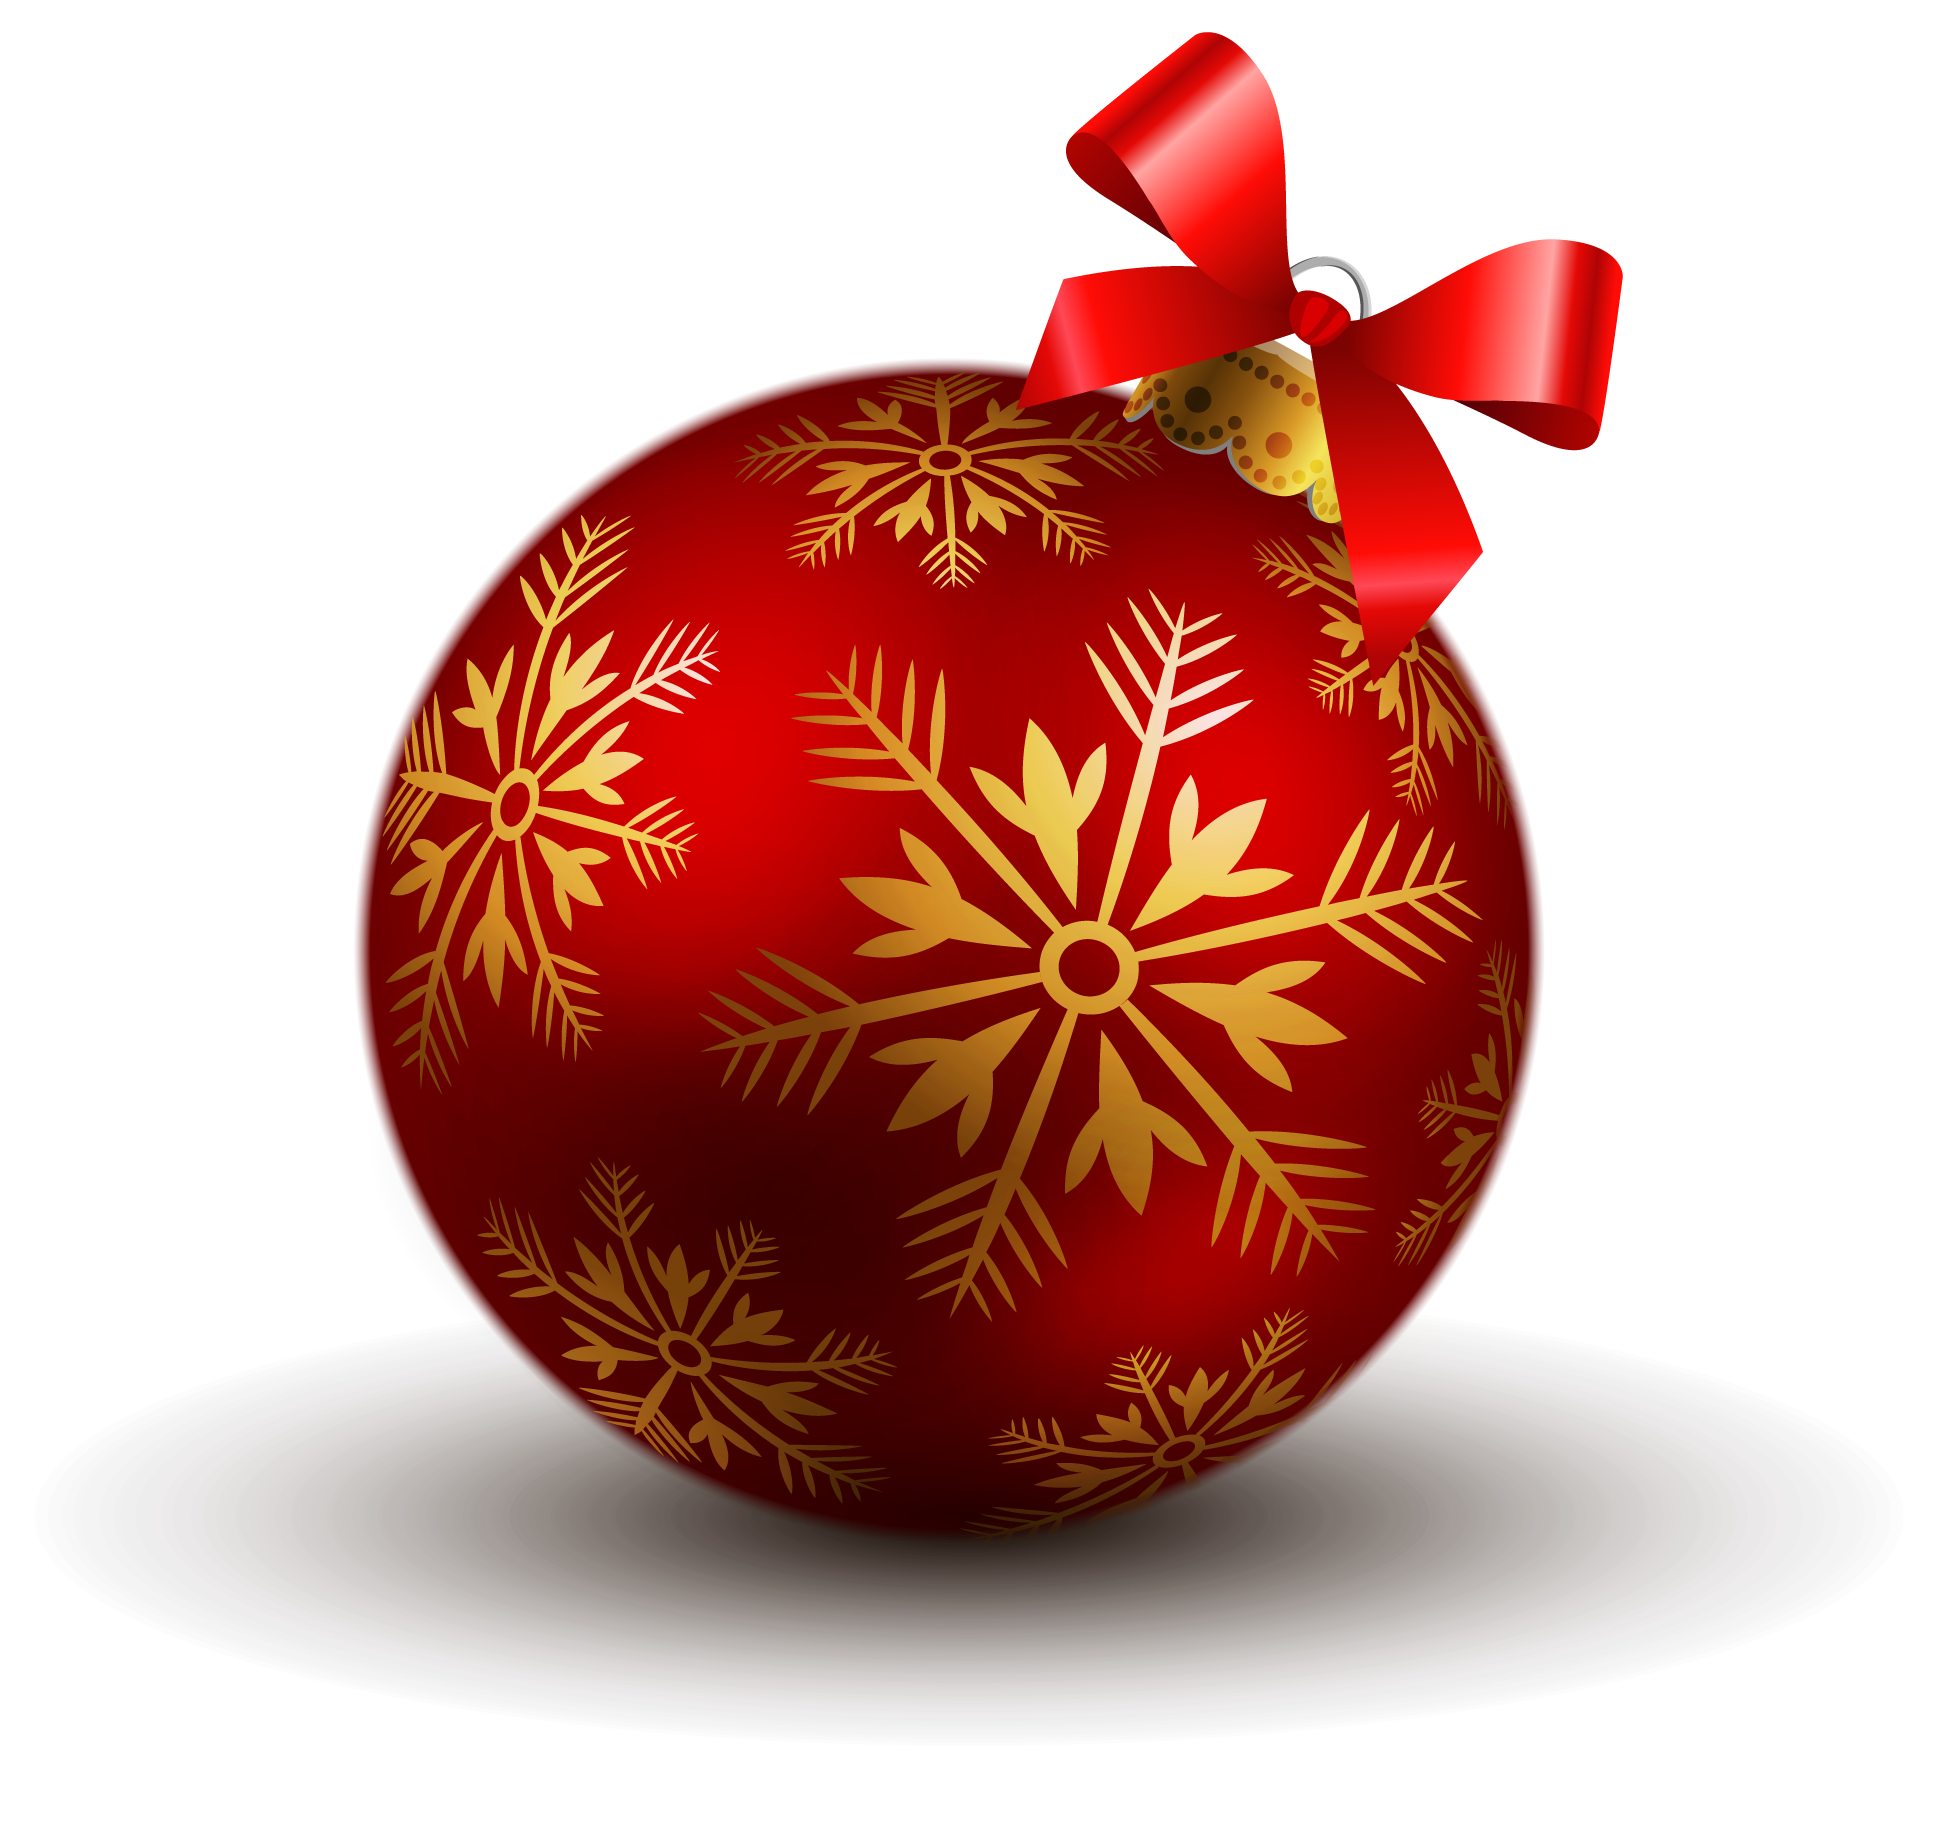 Grab and download Christmas Transparent PNG Image